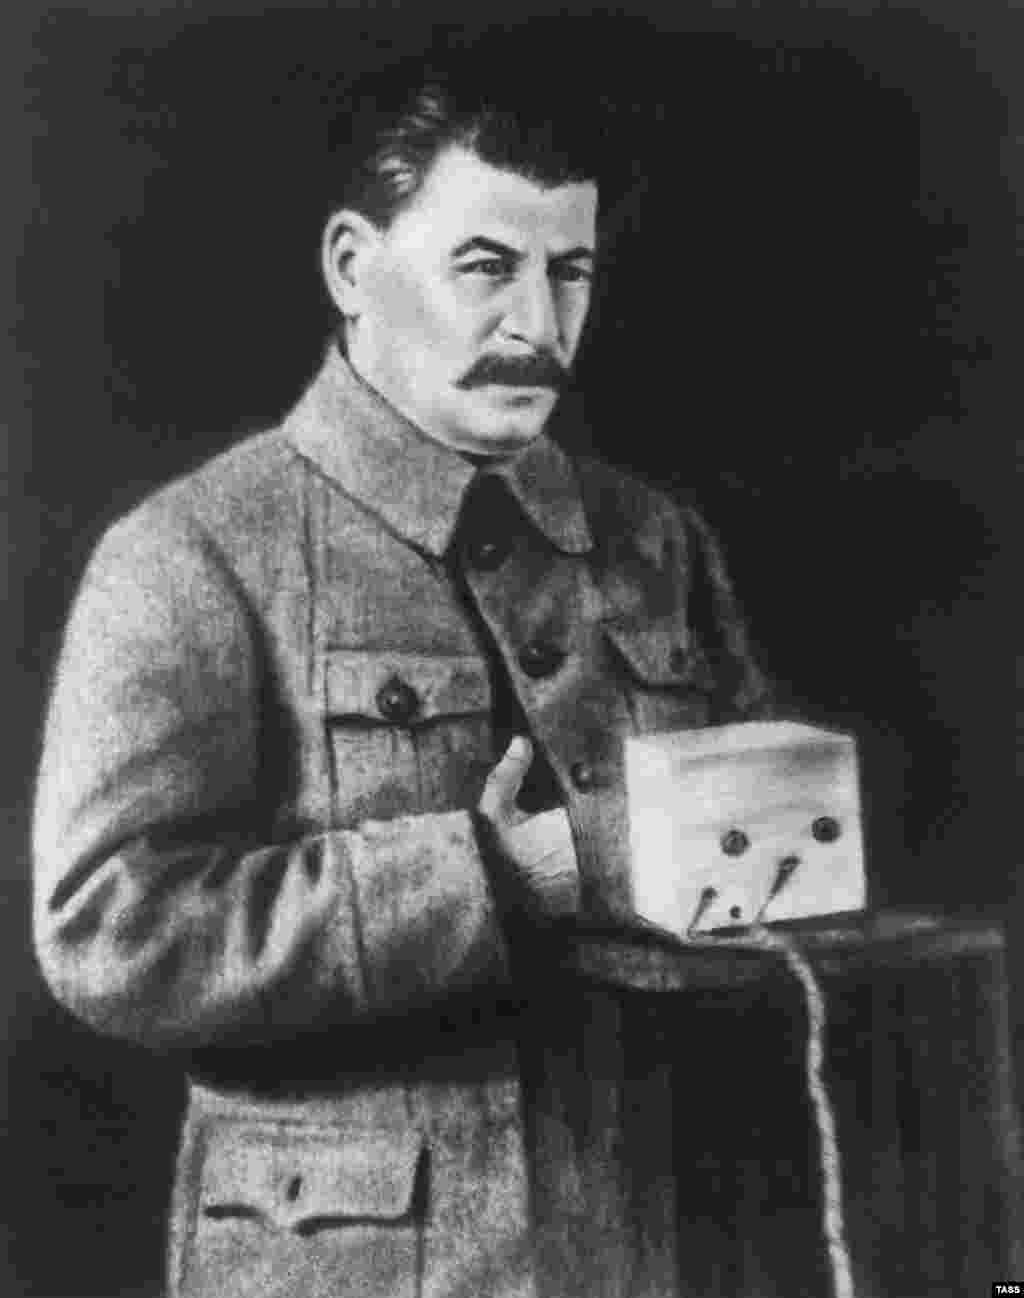 A heavily retouched image of Josef Stalin. Some of the Soviets' image-doctoring was apparently to crisp-up blurry or low-quality images.